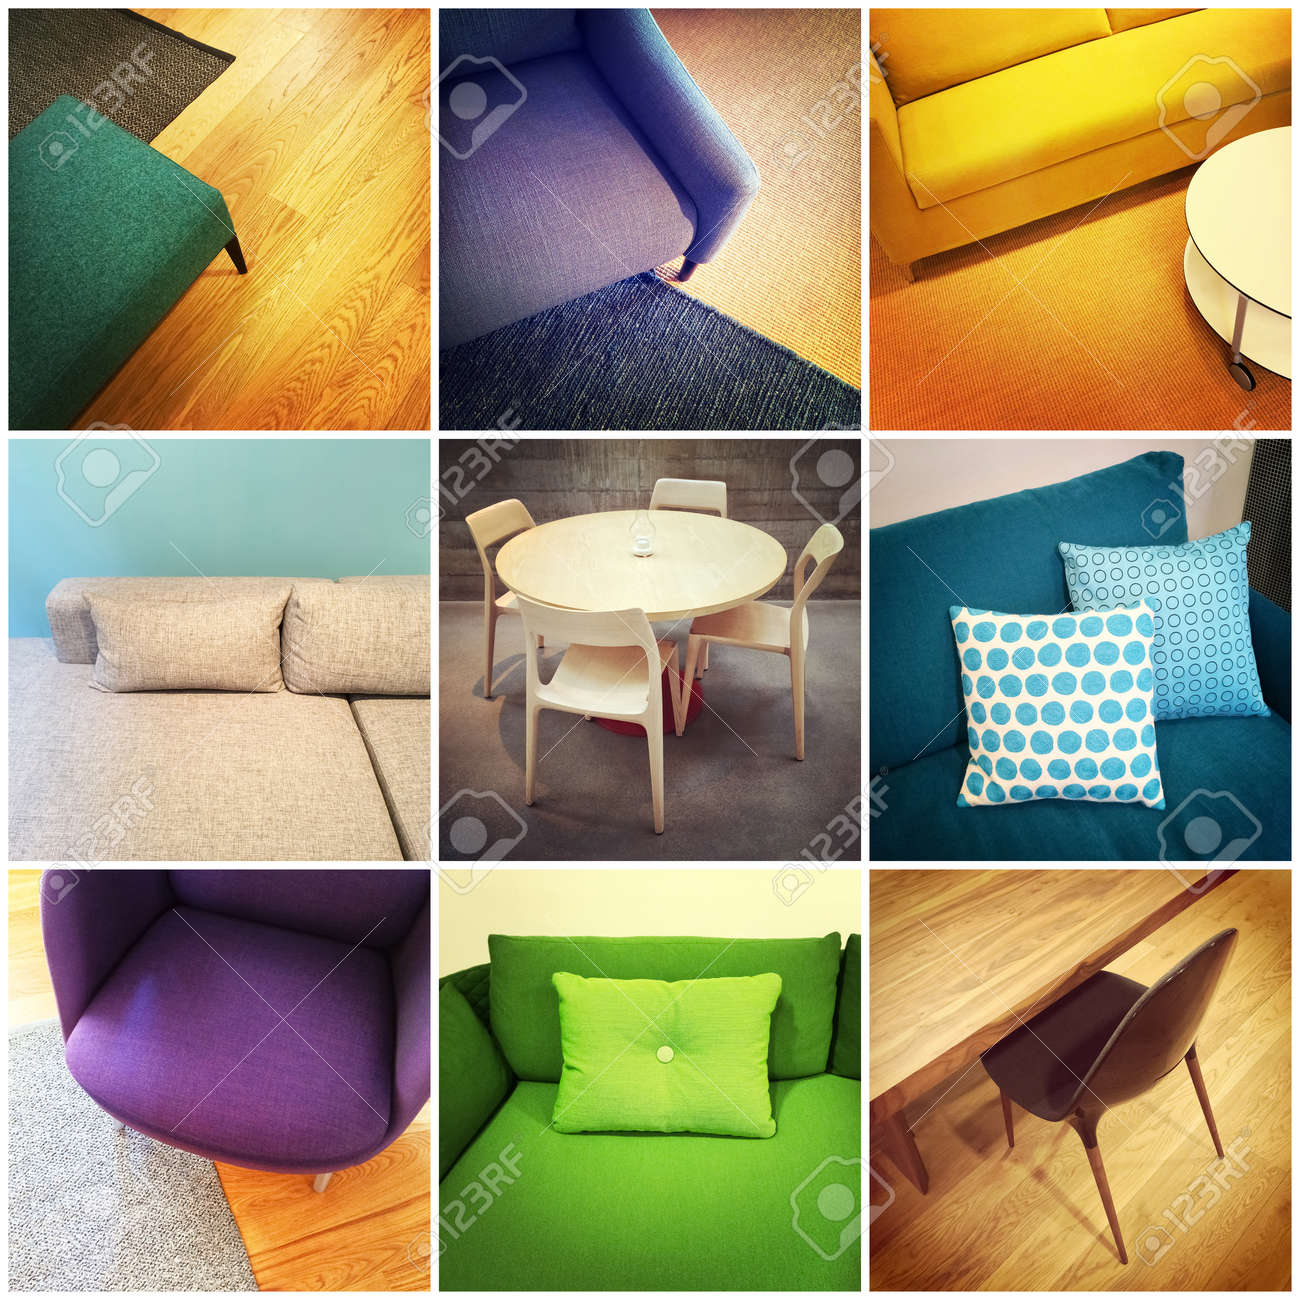 modern colorful furniture. Colorful Modern Furniture. Interior Design, Collage Of Nine Photos. Stock Photo - 47207503 Furniture T